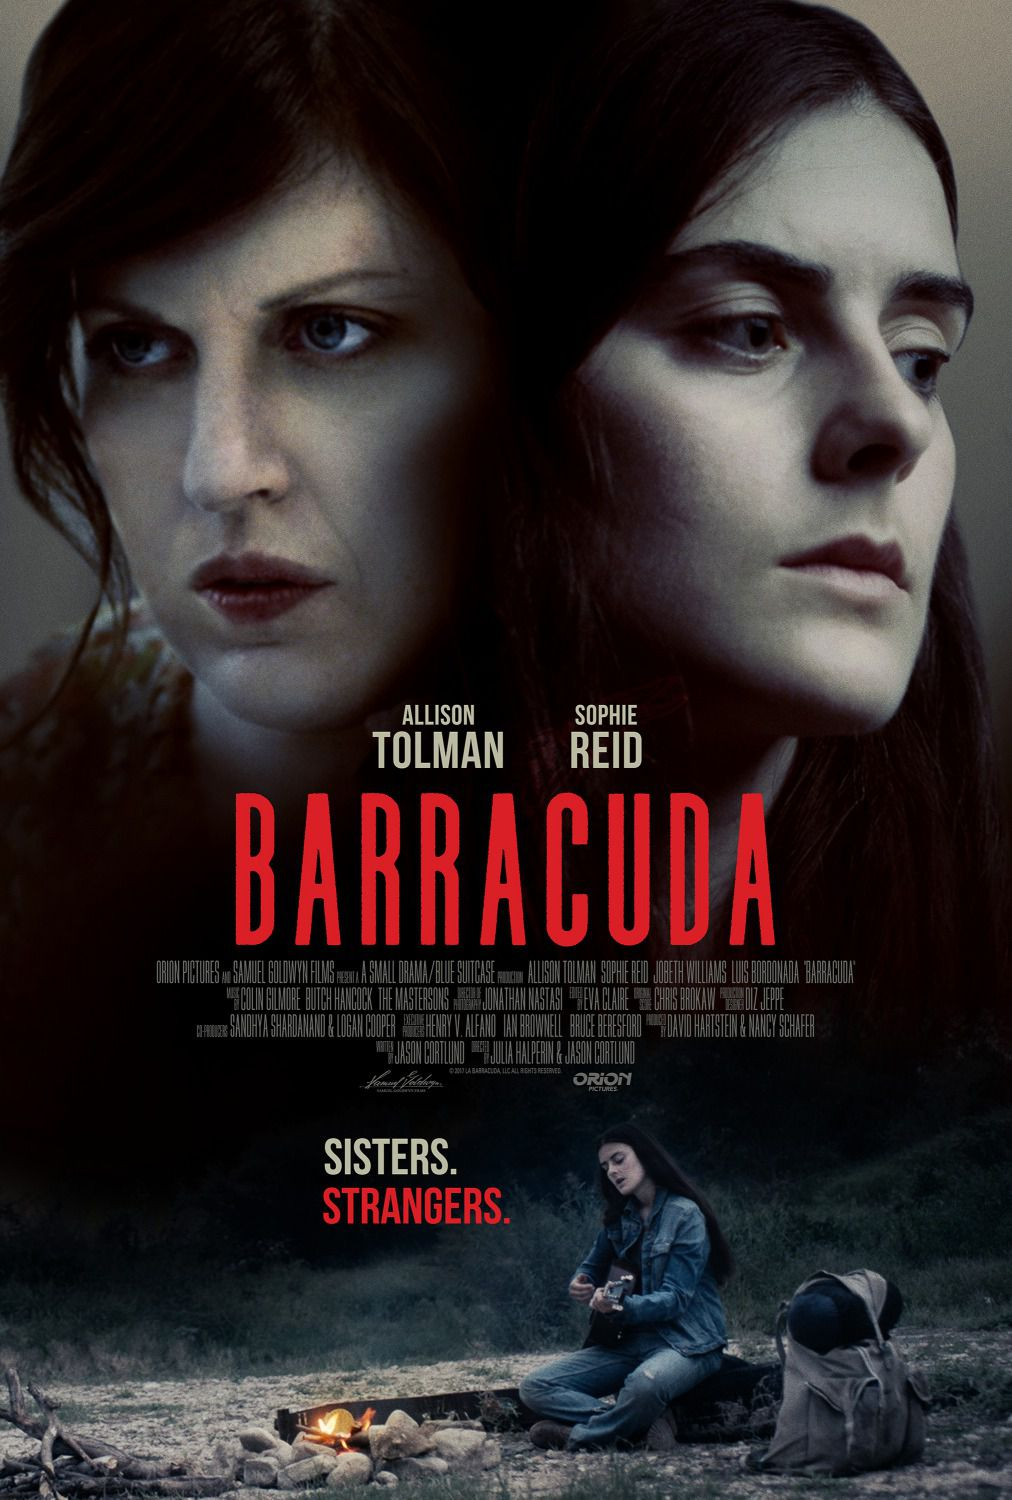 Barracuda - Sophie Reid - Allison Tolman - JoBeth Williams - Luis Bordonada - film poster